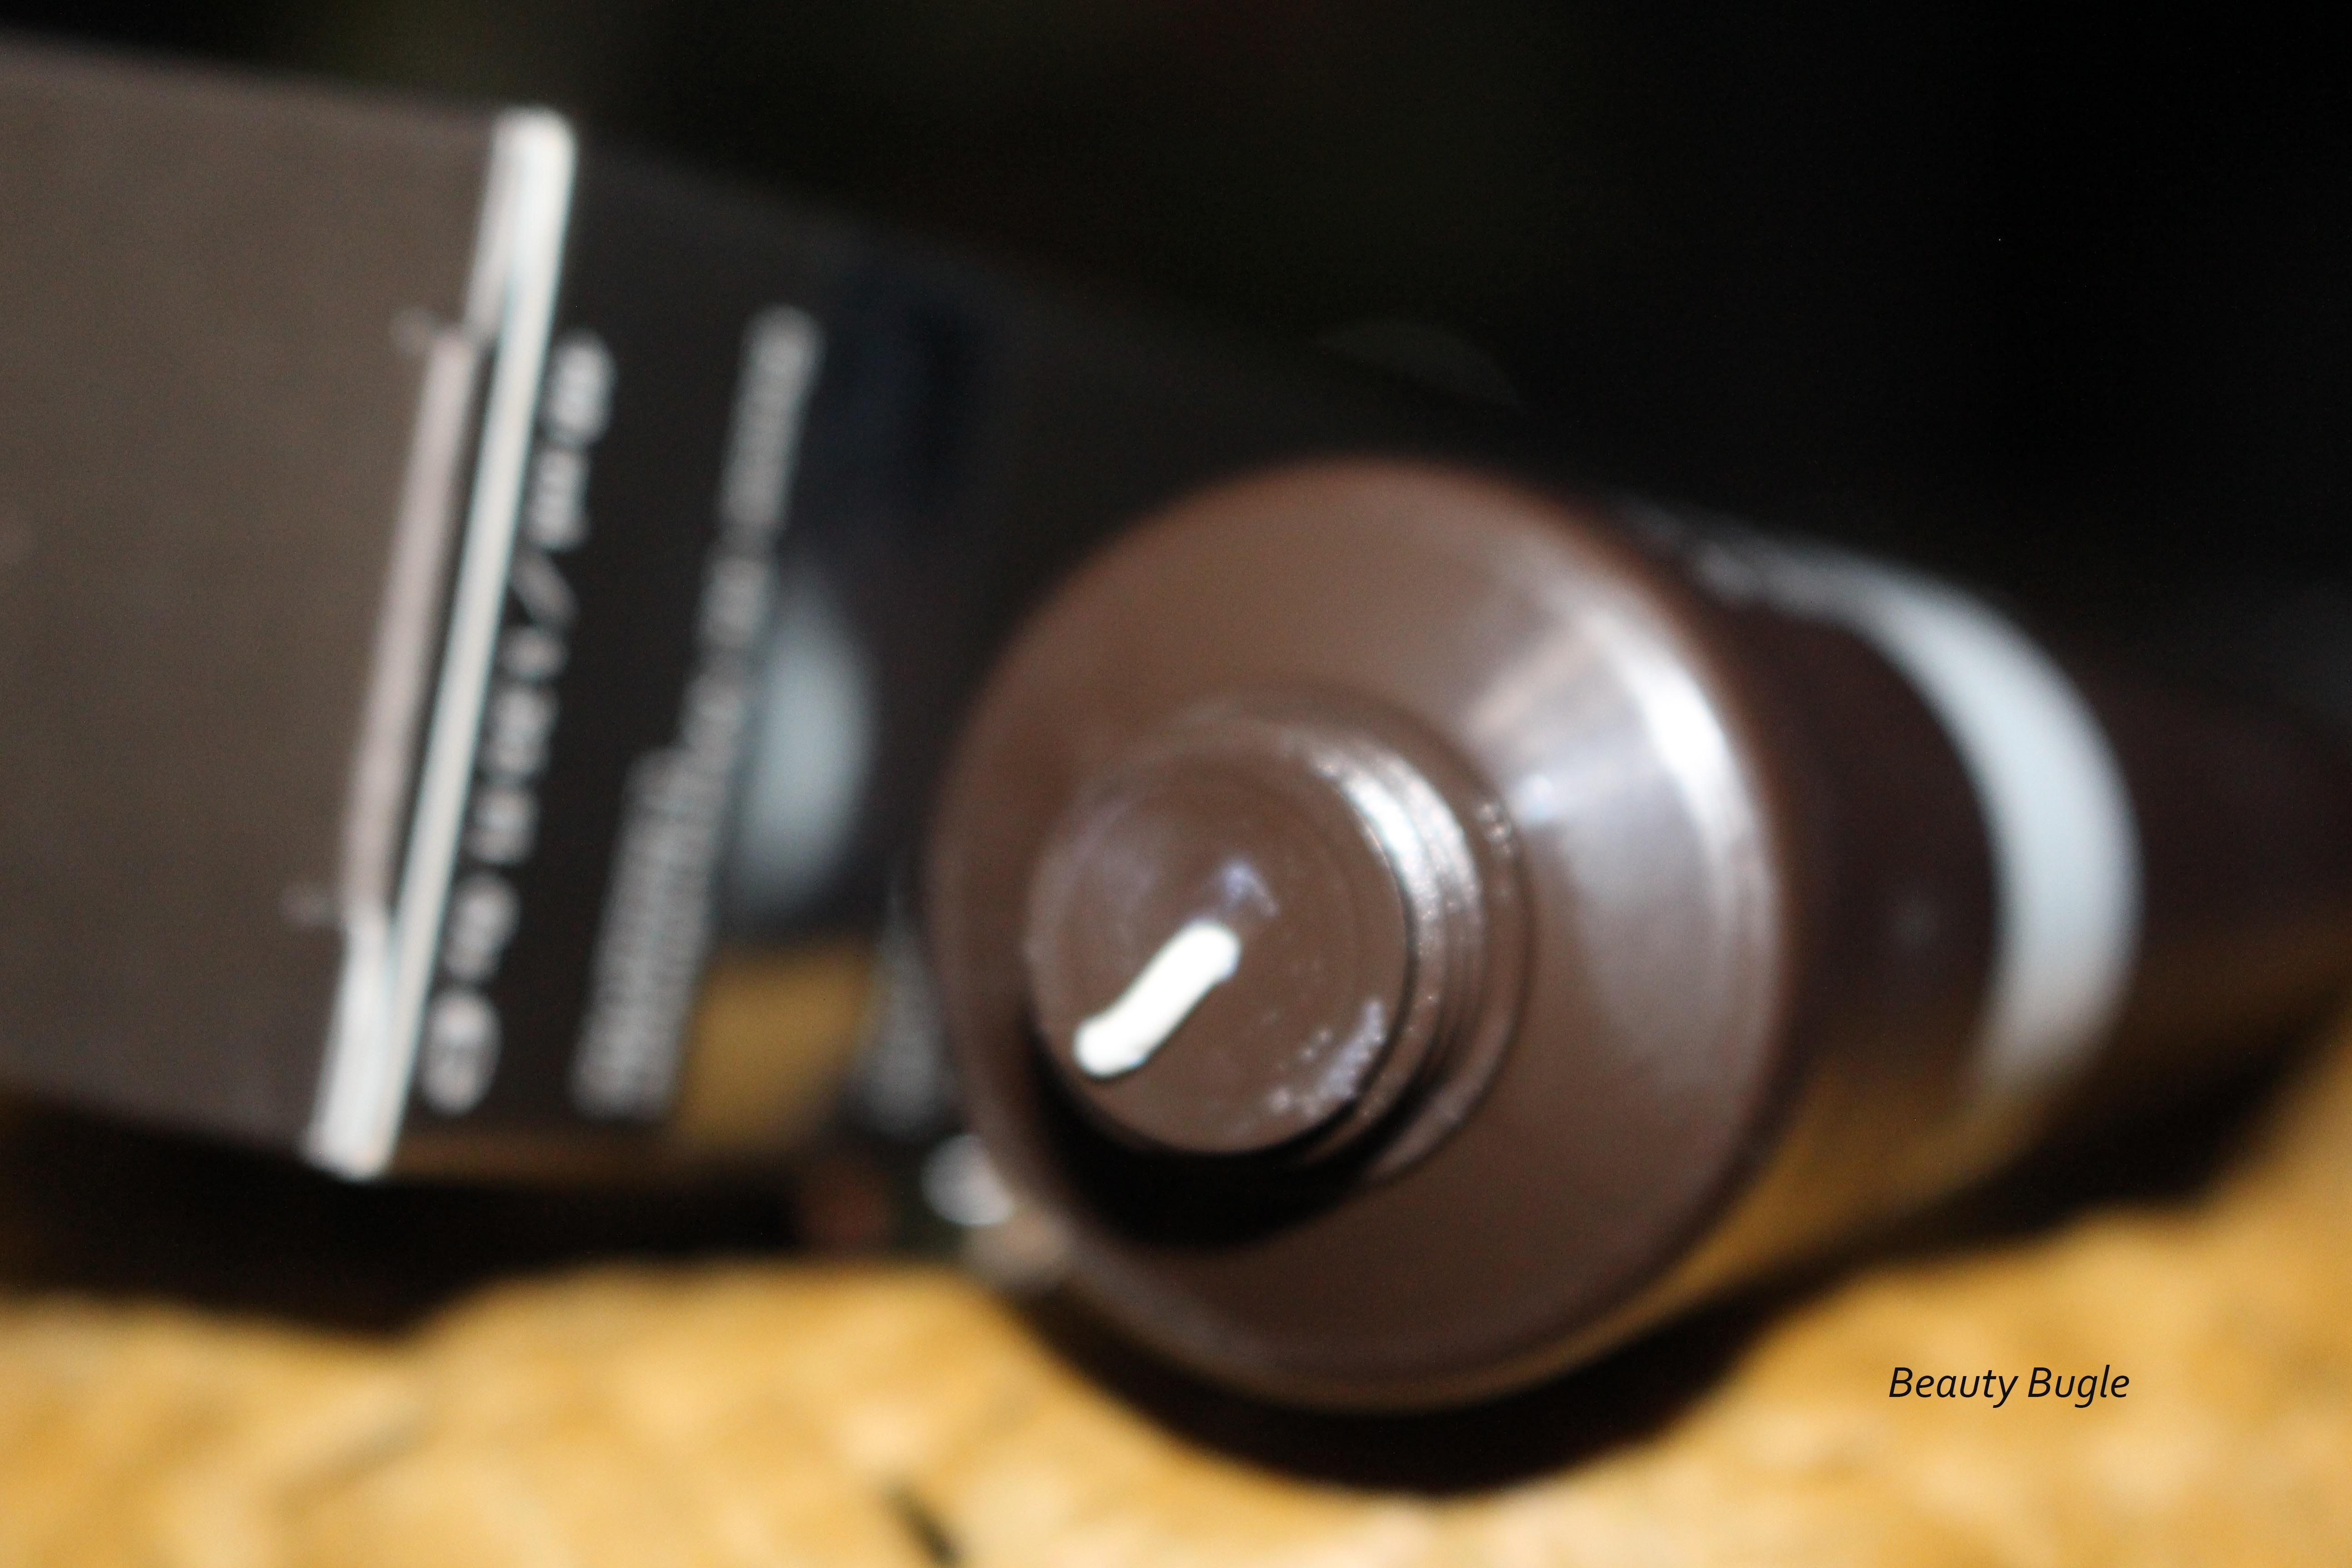 Becca's Resurfacing Primer Perfector™ squeezed out of the tube is thick and white.